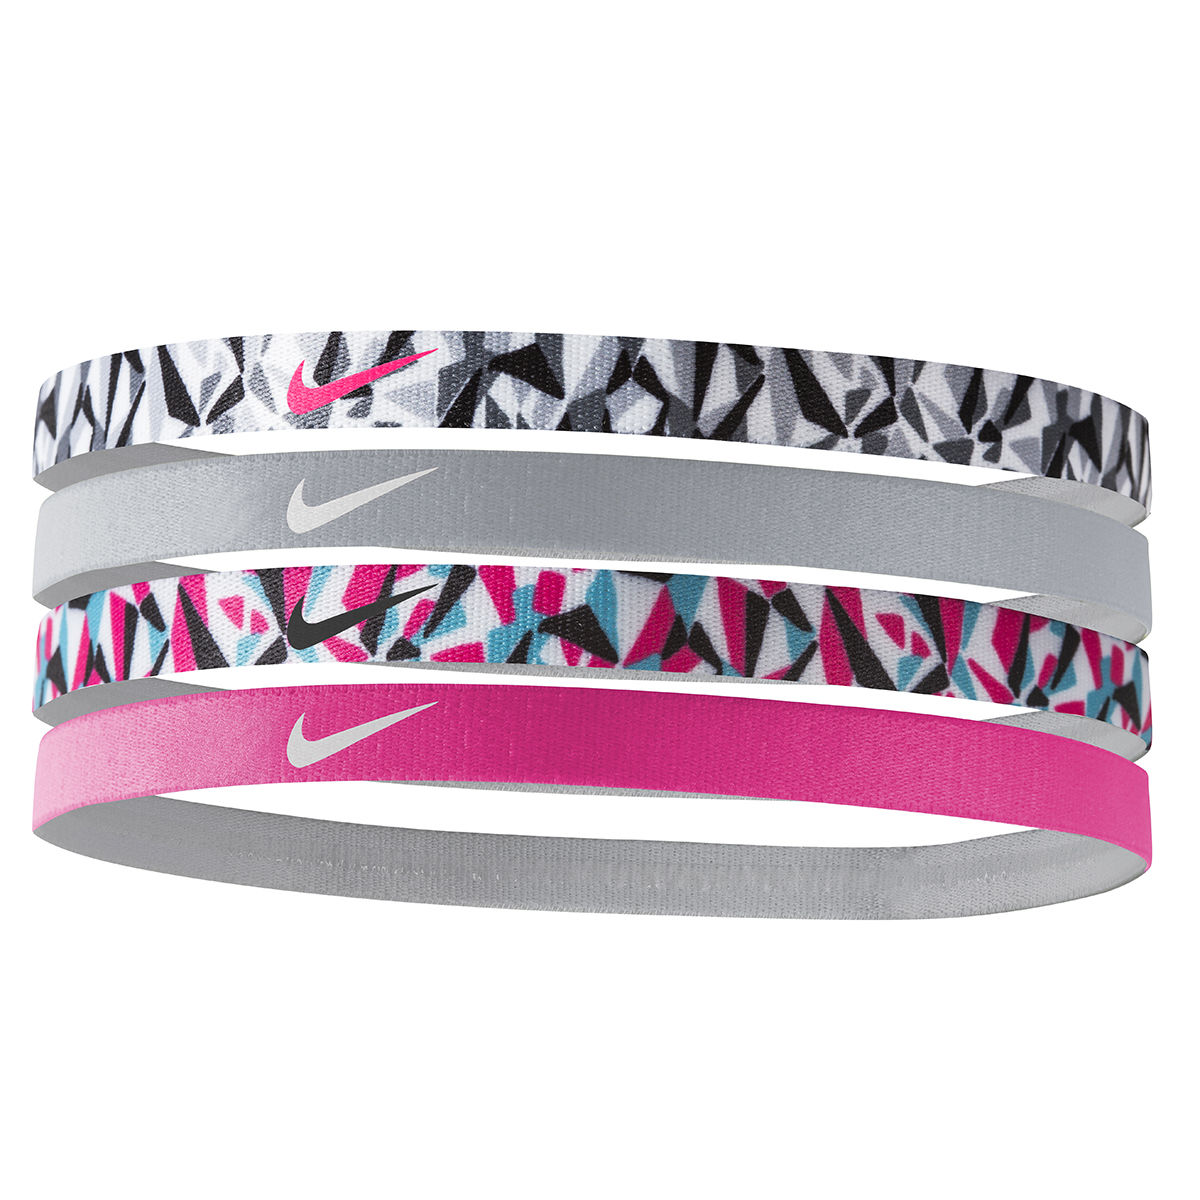 Nike Assorted 4-Pack Girls Headbands